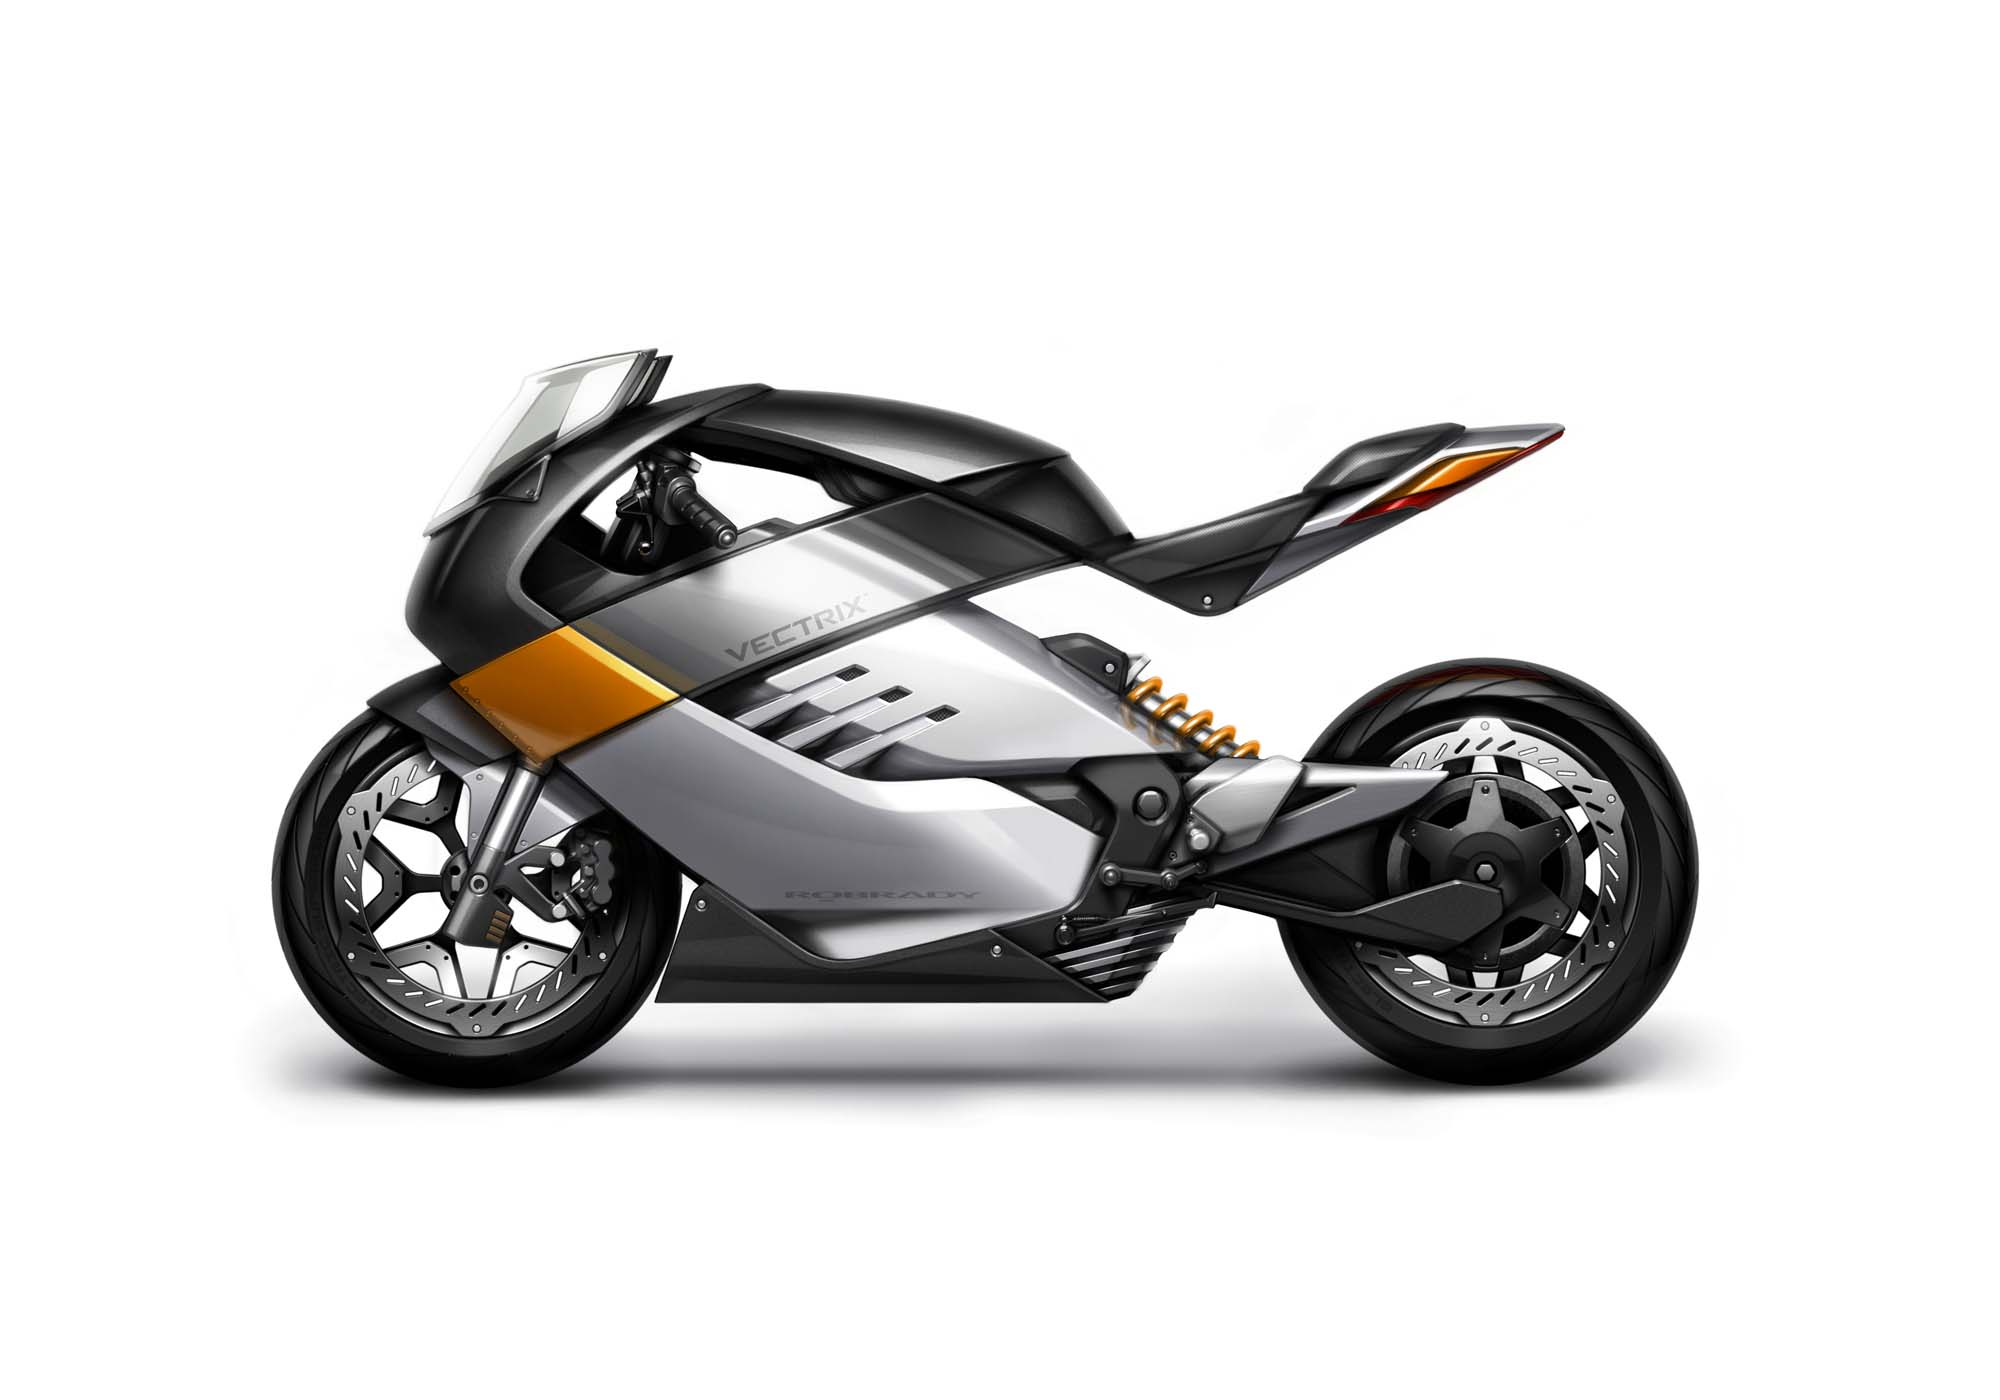 Vectrix superbike photo - 5